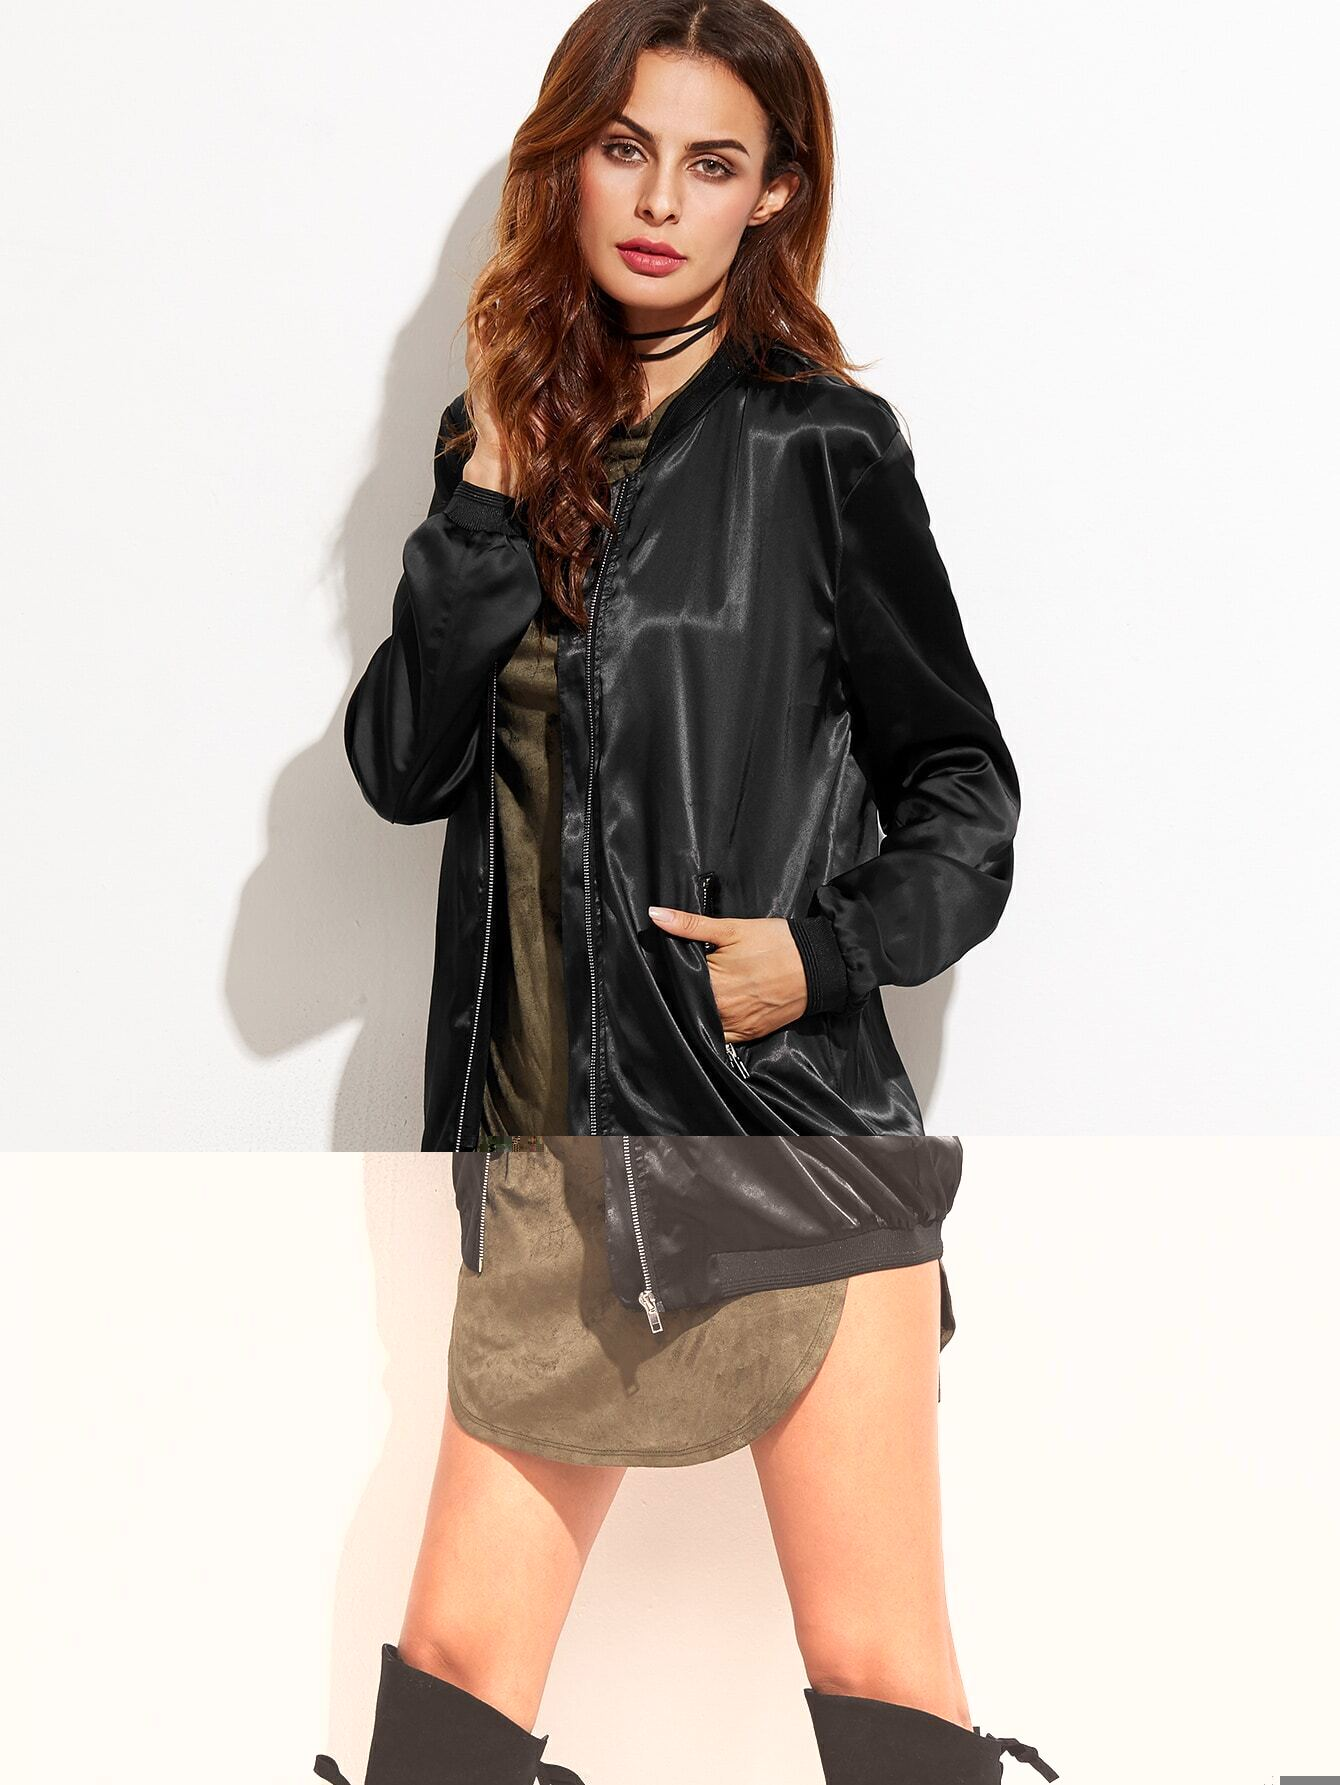 Sheincom Is Mainly Design And Produce Fashion Clothing For Women Tendencies Short Shirts Basic Long Collar Less Wine Burgundy L All Over The World About 5 Years Shop Latest Womens Dresses Tops